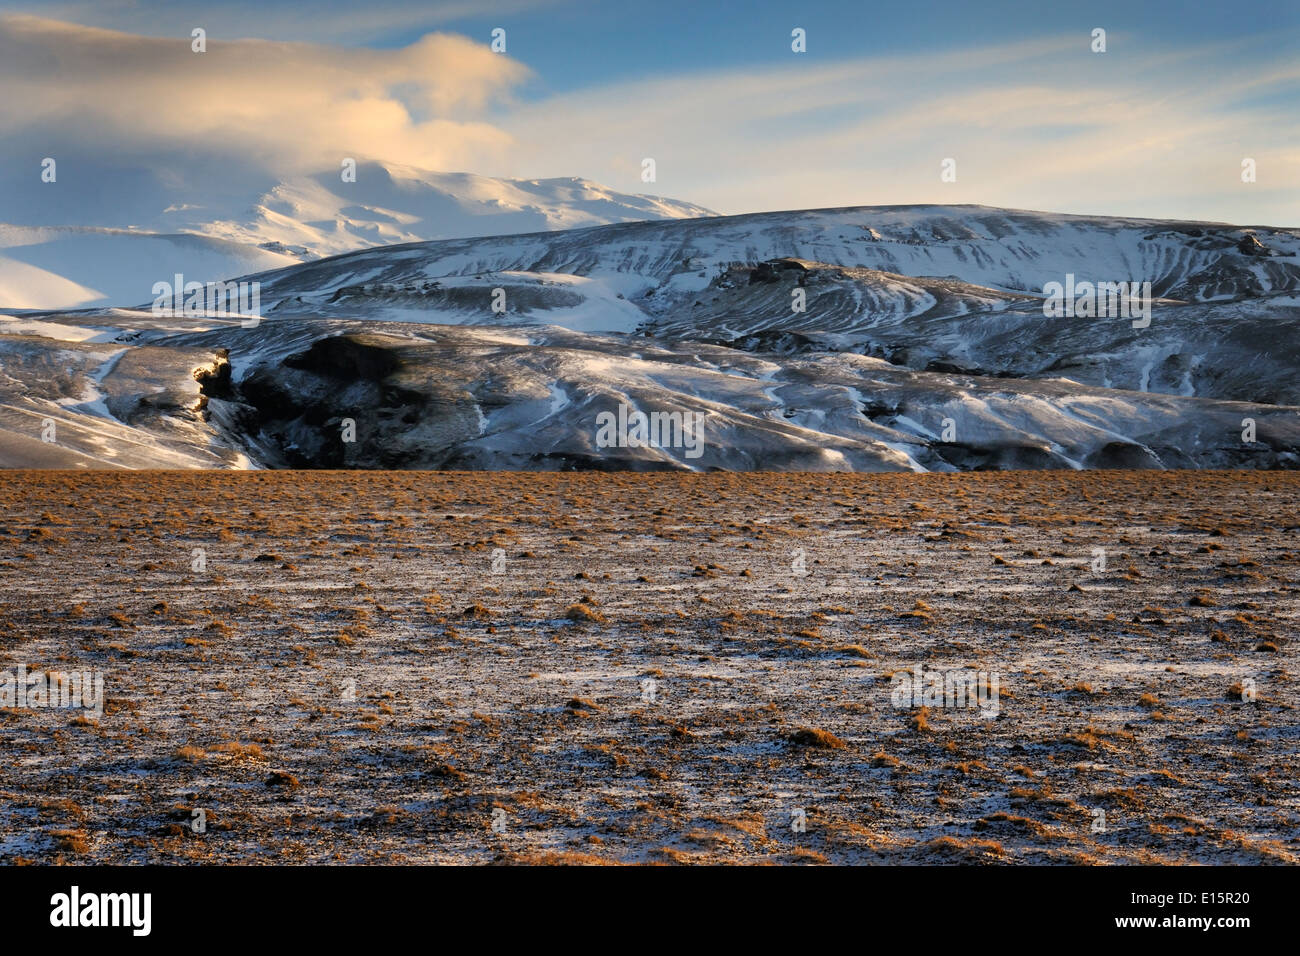 Icelandic landscape with view on the Hekla volcano and frozen lava field, Iceland. - Stock Image